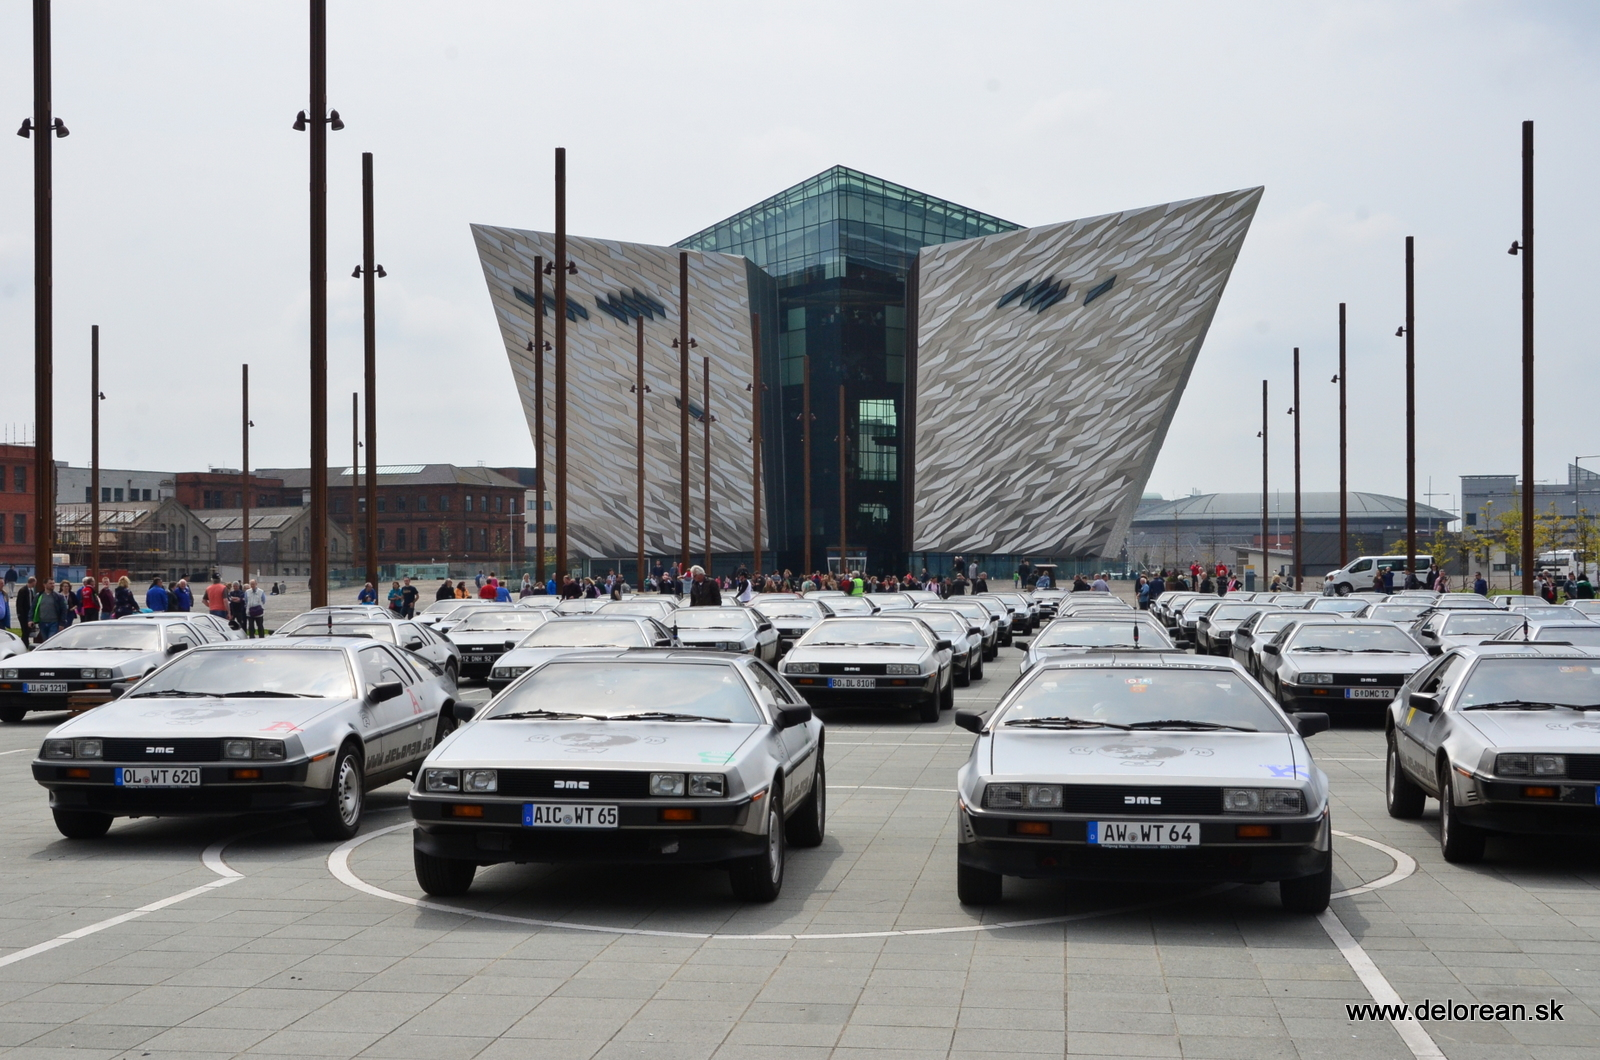 More than 90 Deloreans